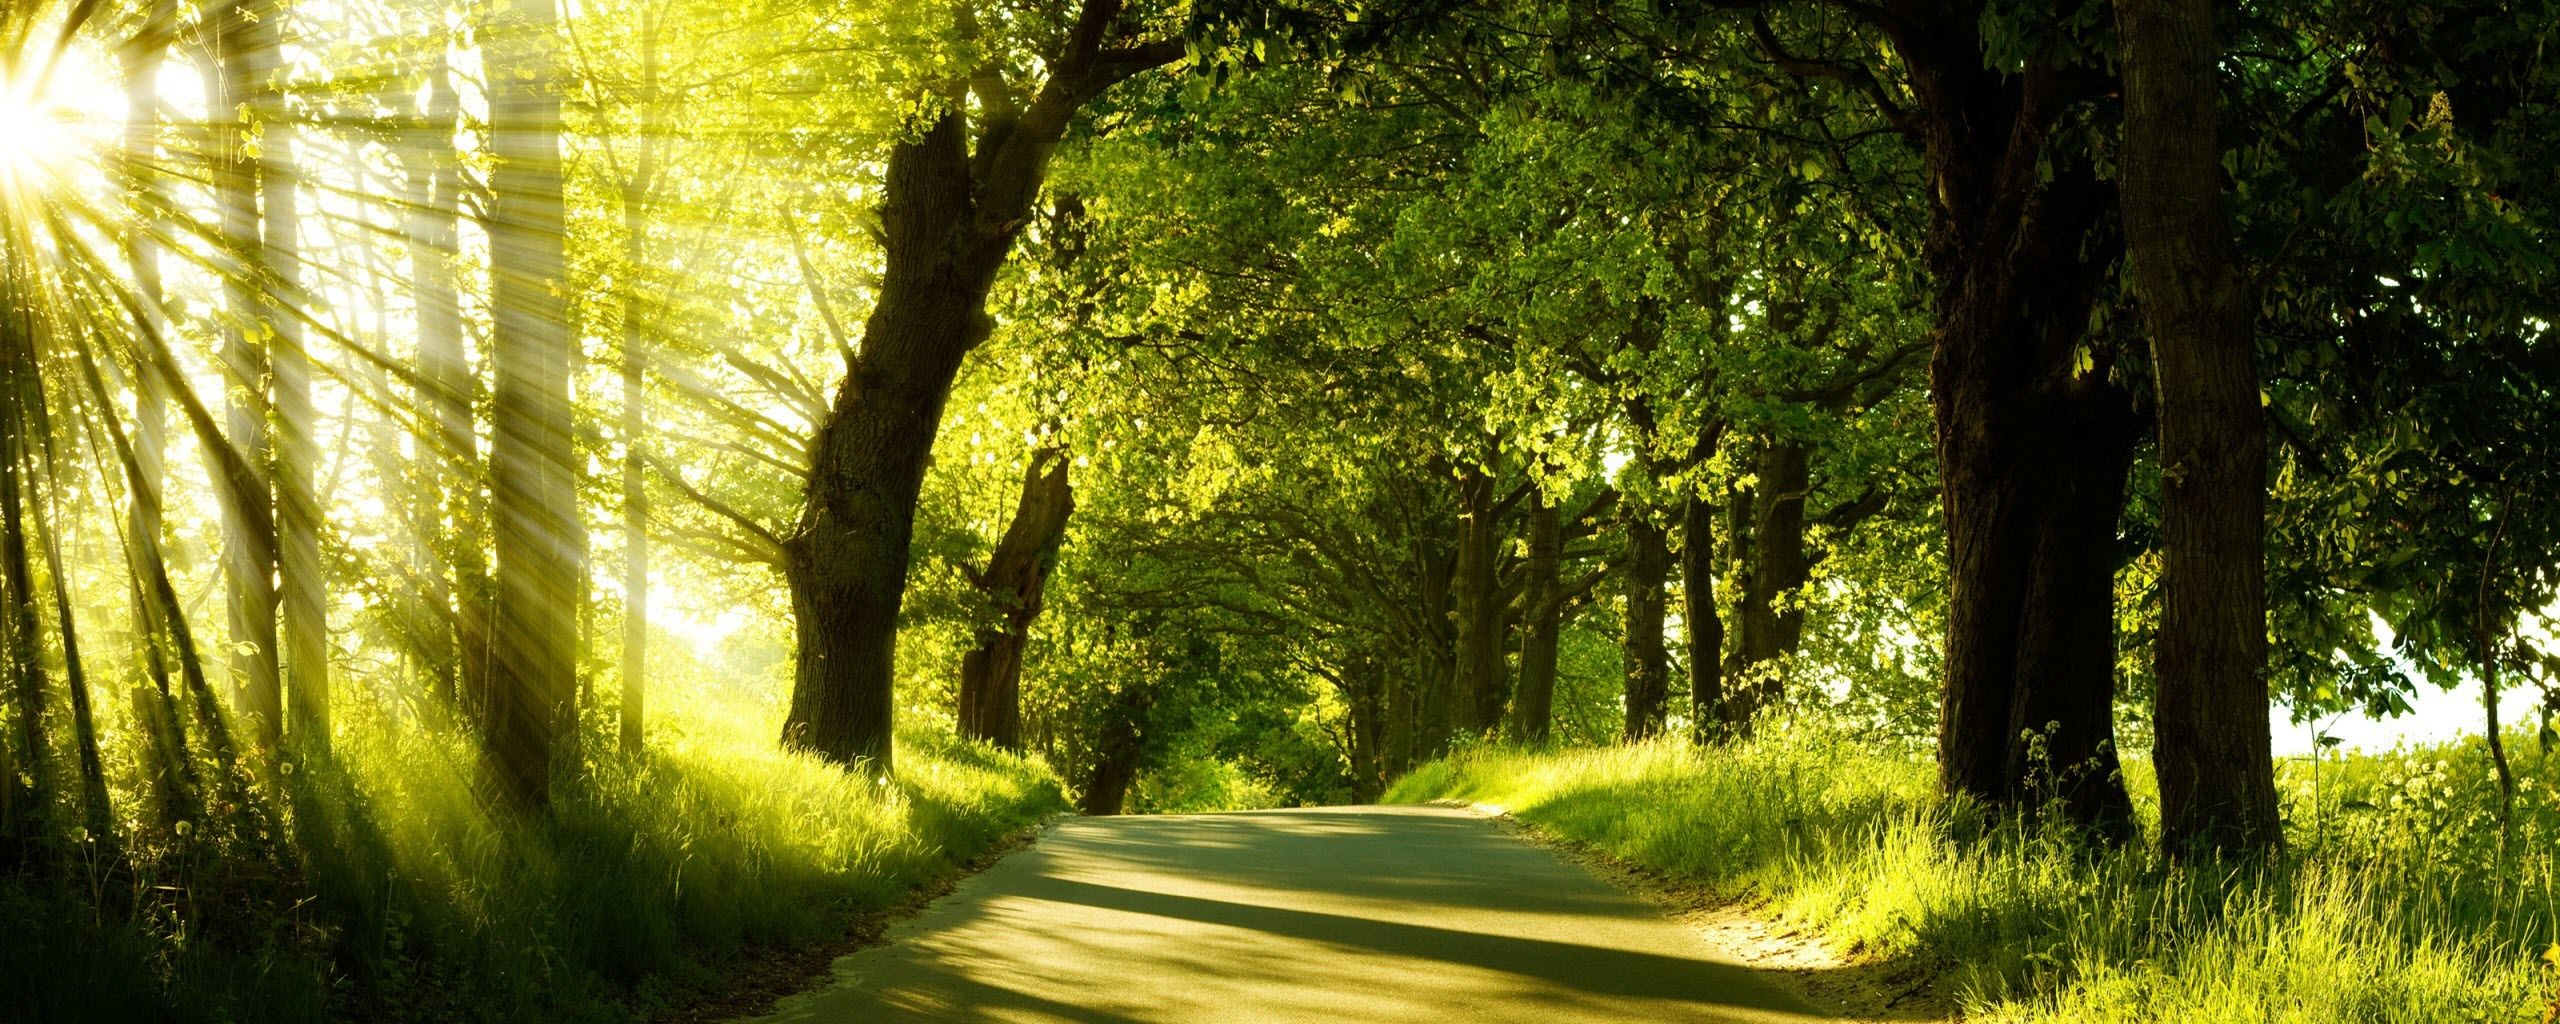 Nature Wallpapers - Top Free Nature Backgrounds - WallpaperAccess